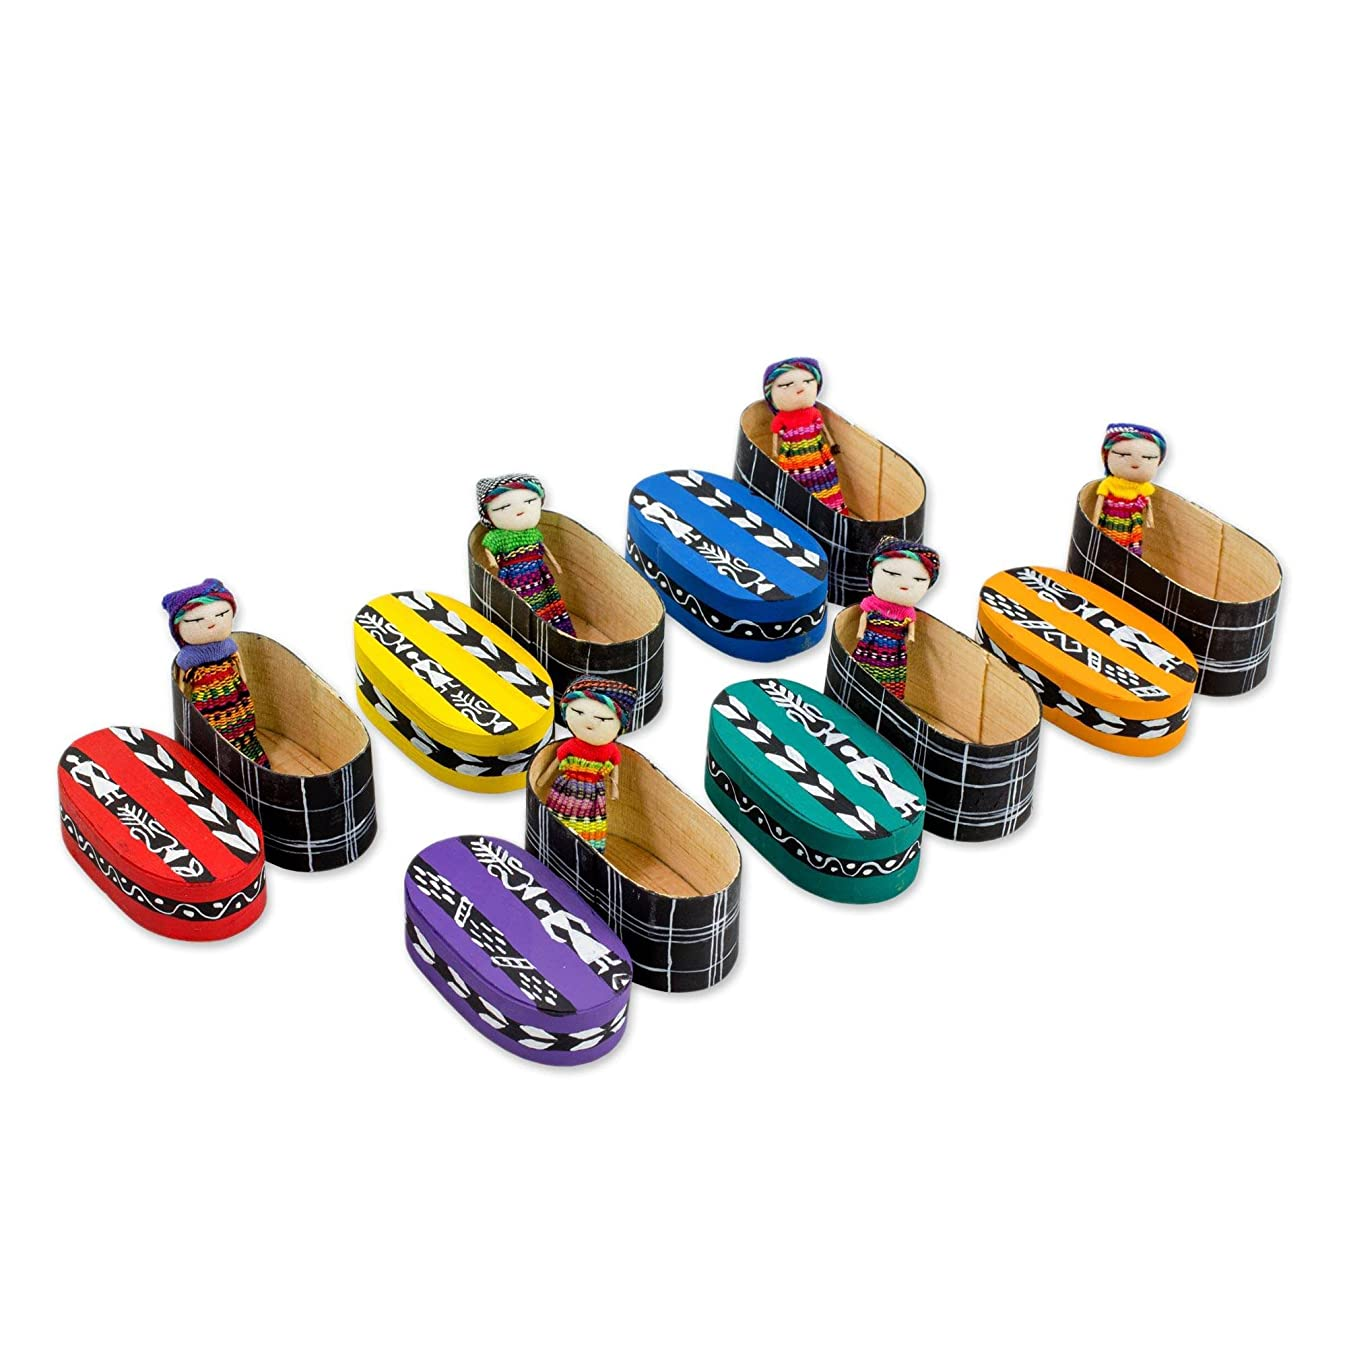 NOVICA Traditional Handmade Worry Dolls from Guatemala with Individual Painted Wood Storage Boxes, 2.5 inch, Country Beauties' (Set of 6)